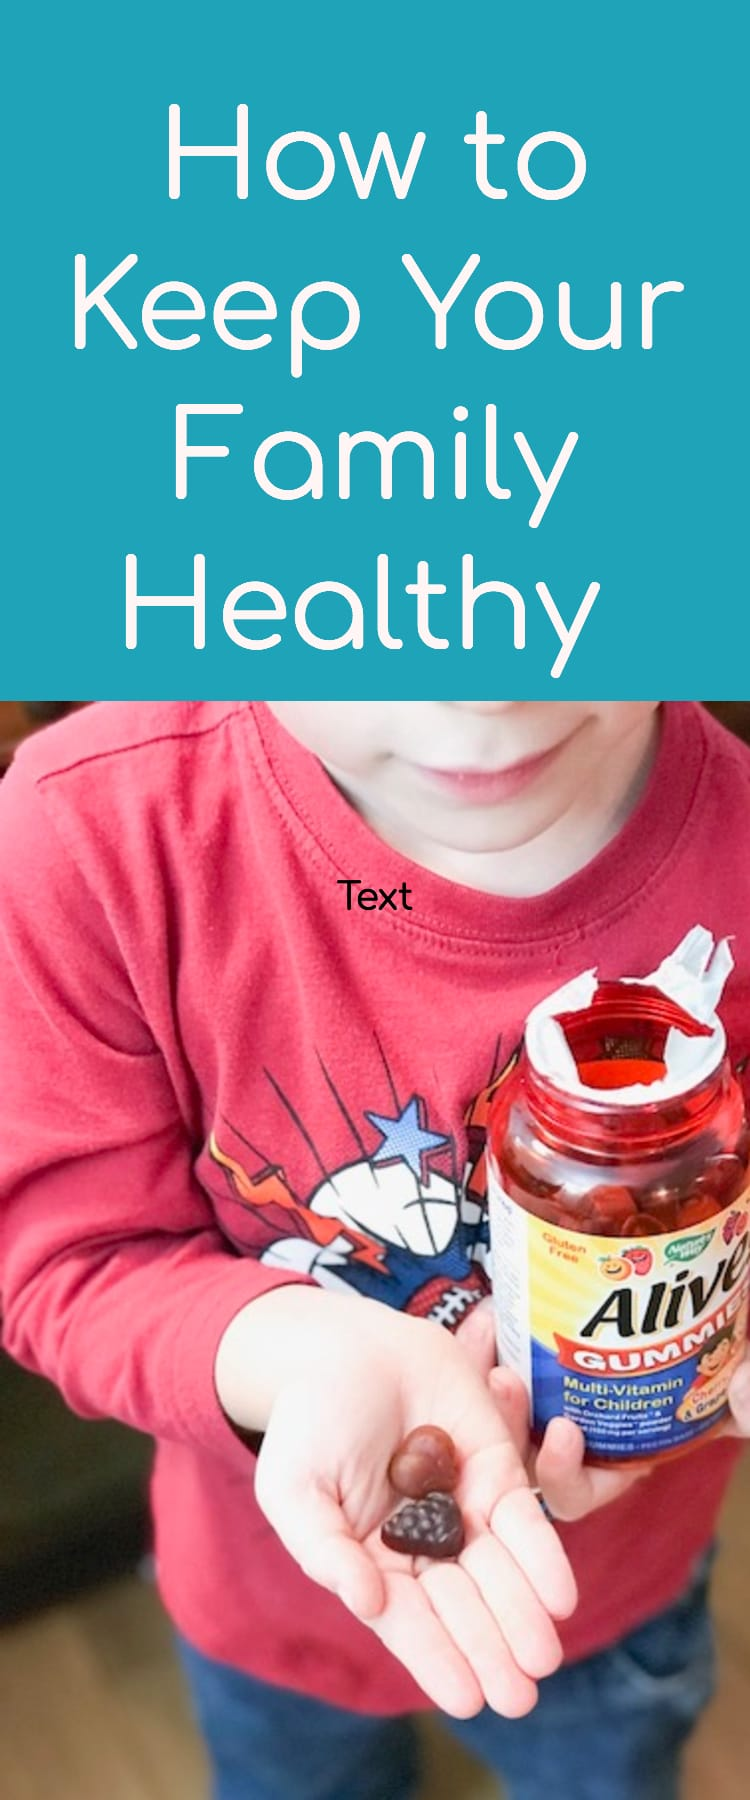 Health / Healthy Living / Healthy Tips / Natural Health / Kids / #Healthy #health via @clarkscondensed